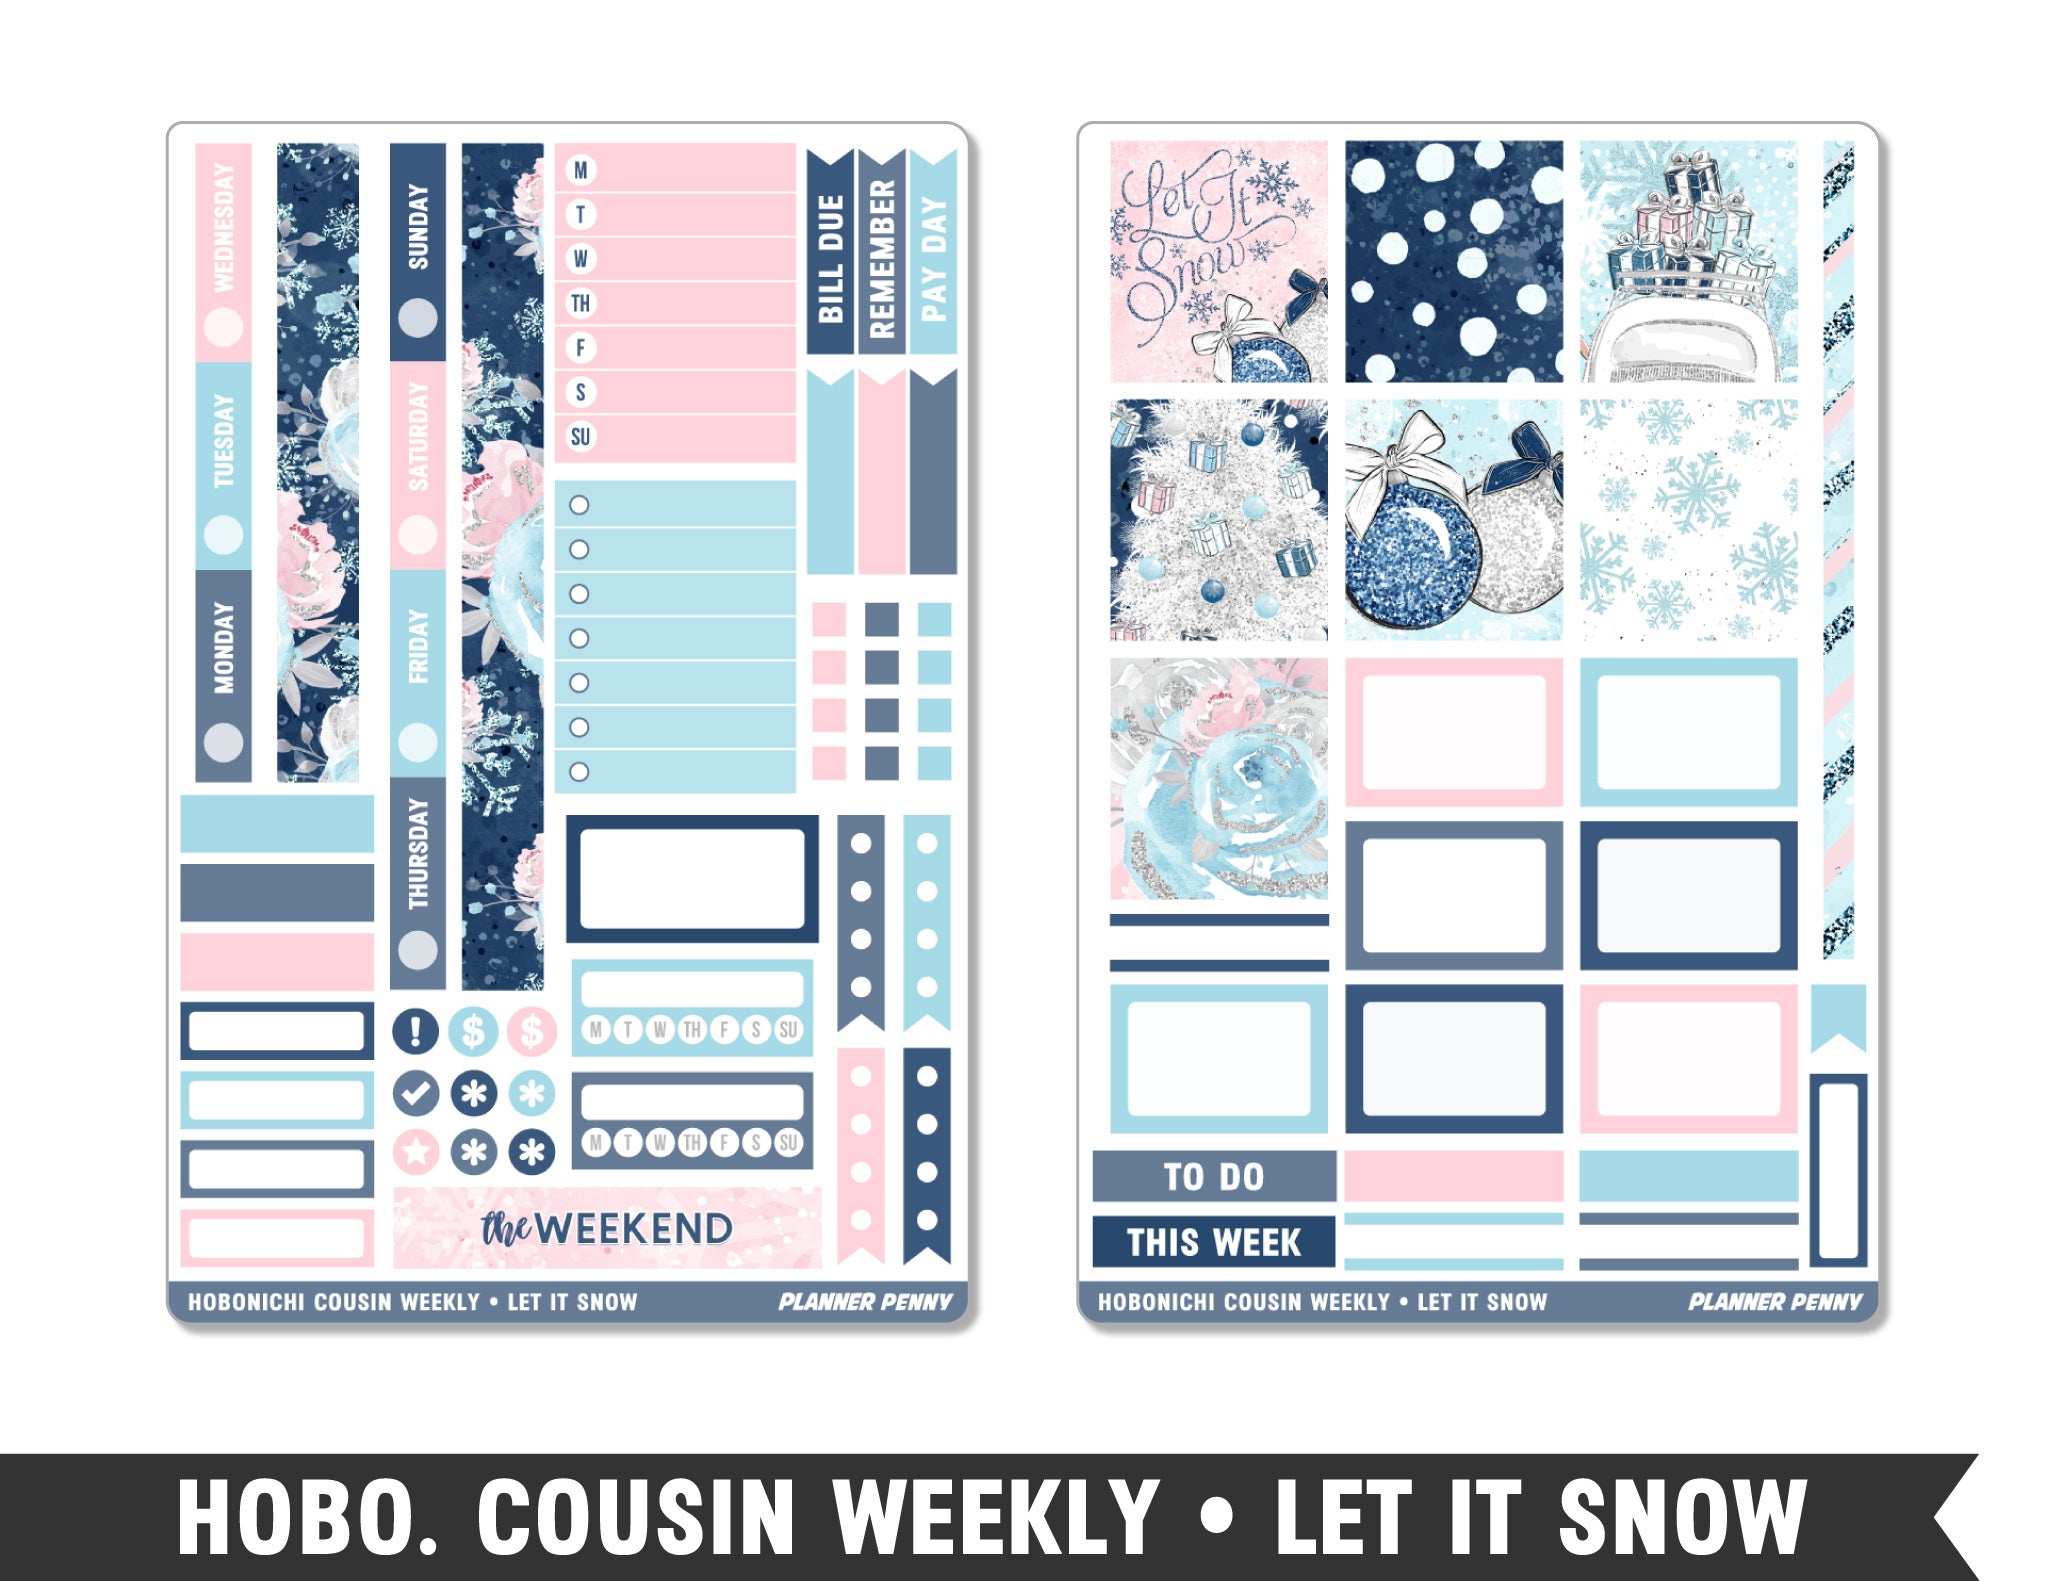 Hobonichi Cousin • Let It Snow • Weekly Spread Planner Stickers